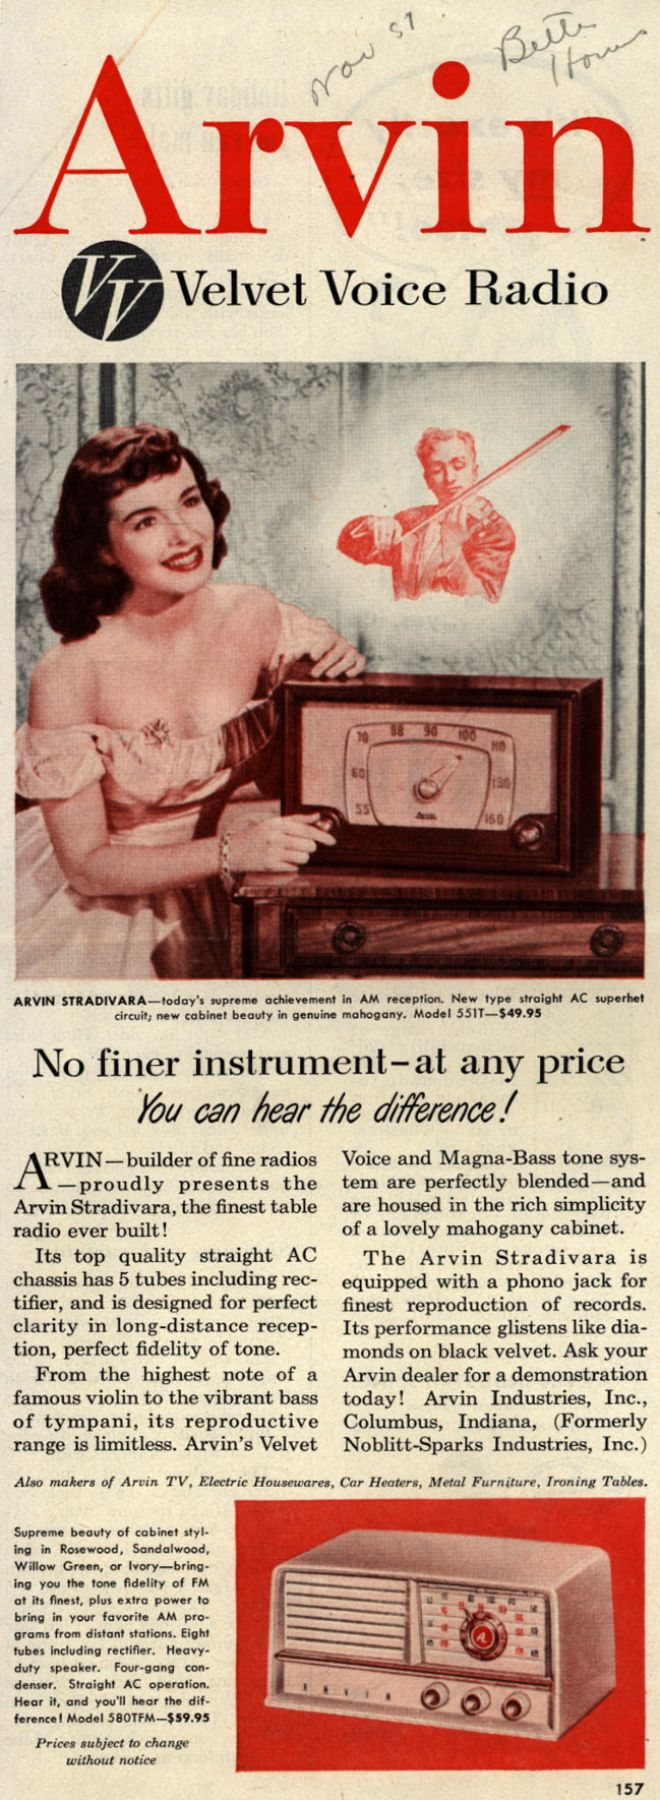 Vintage electronics tv of the 1950s page 20 arvin radios stradivara arvin velvet voice radio publicscrutiny Choice Image